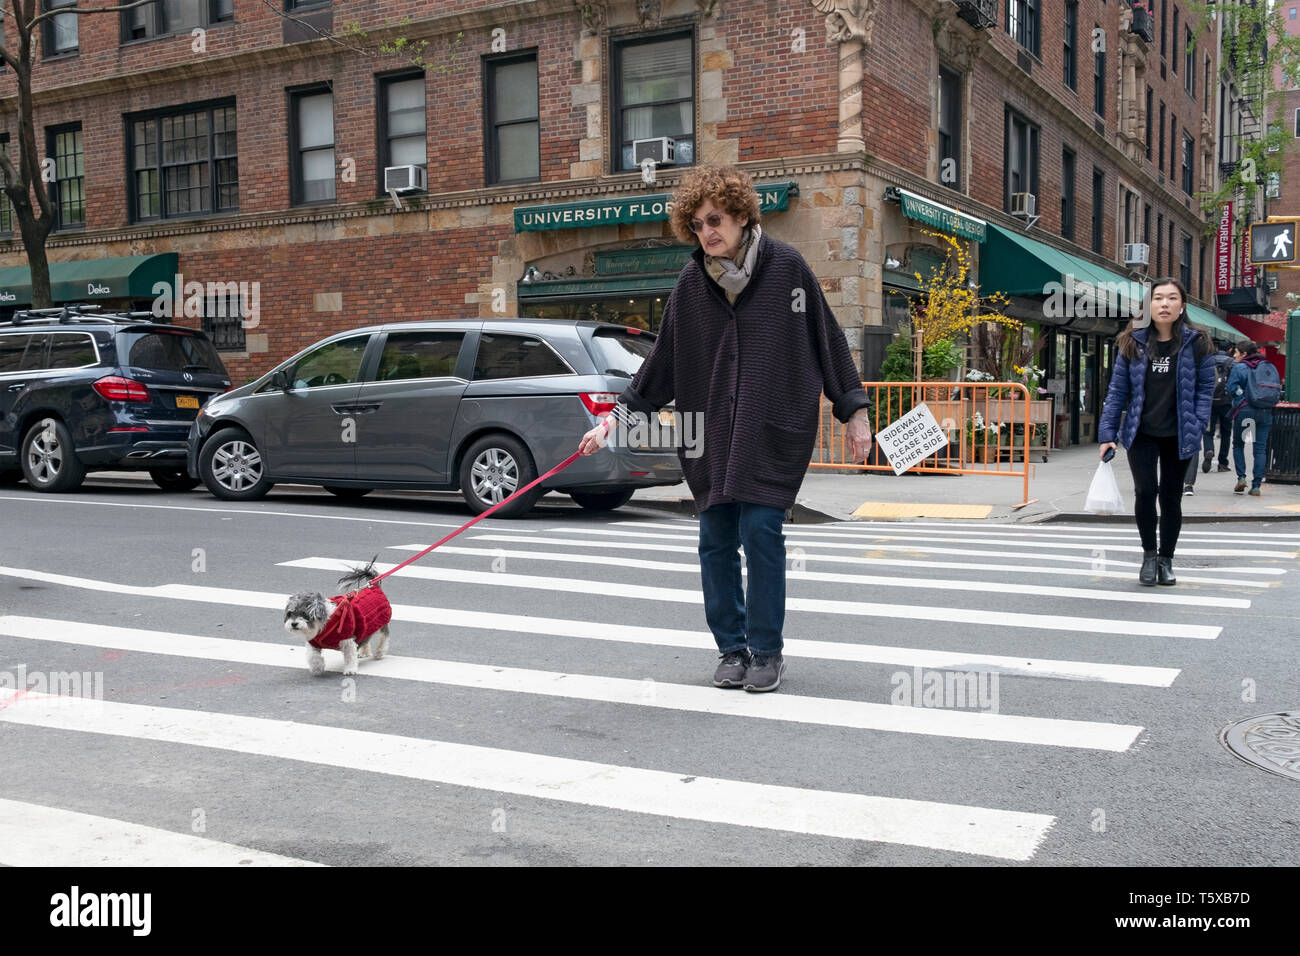 A middle aged woman walking her small dog on University Place in Greenwich Village, Manhattan, New York City. Stock Photo